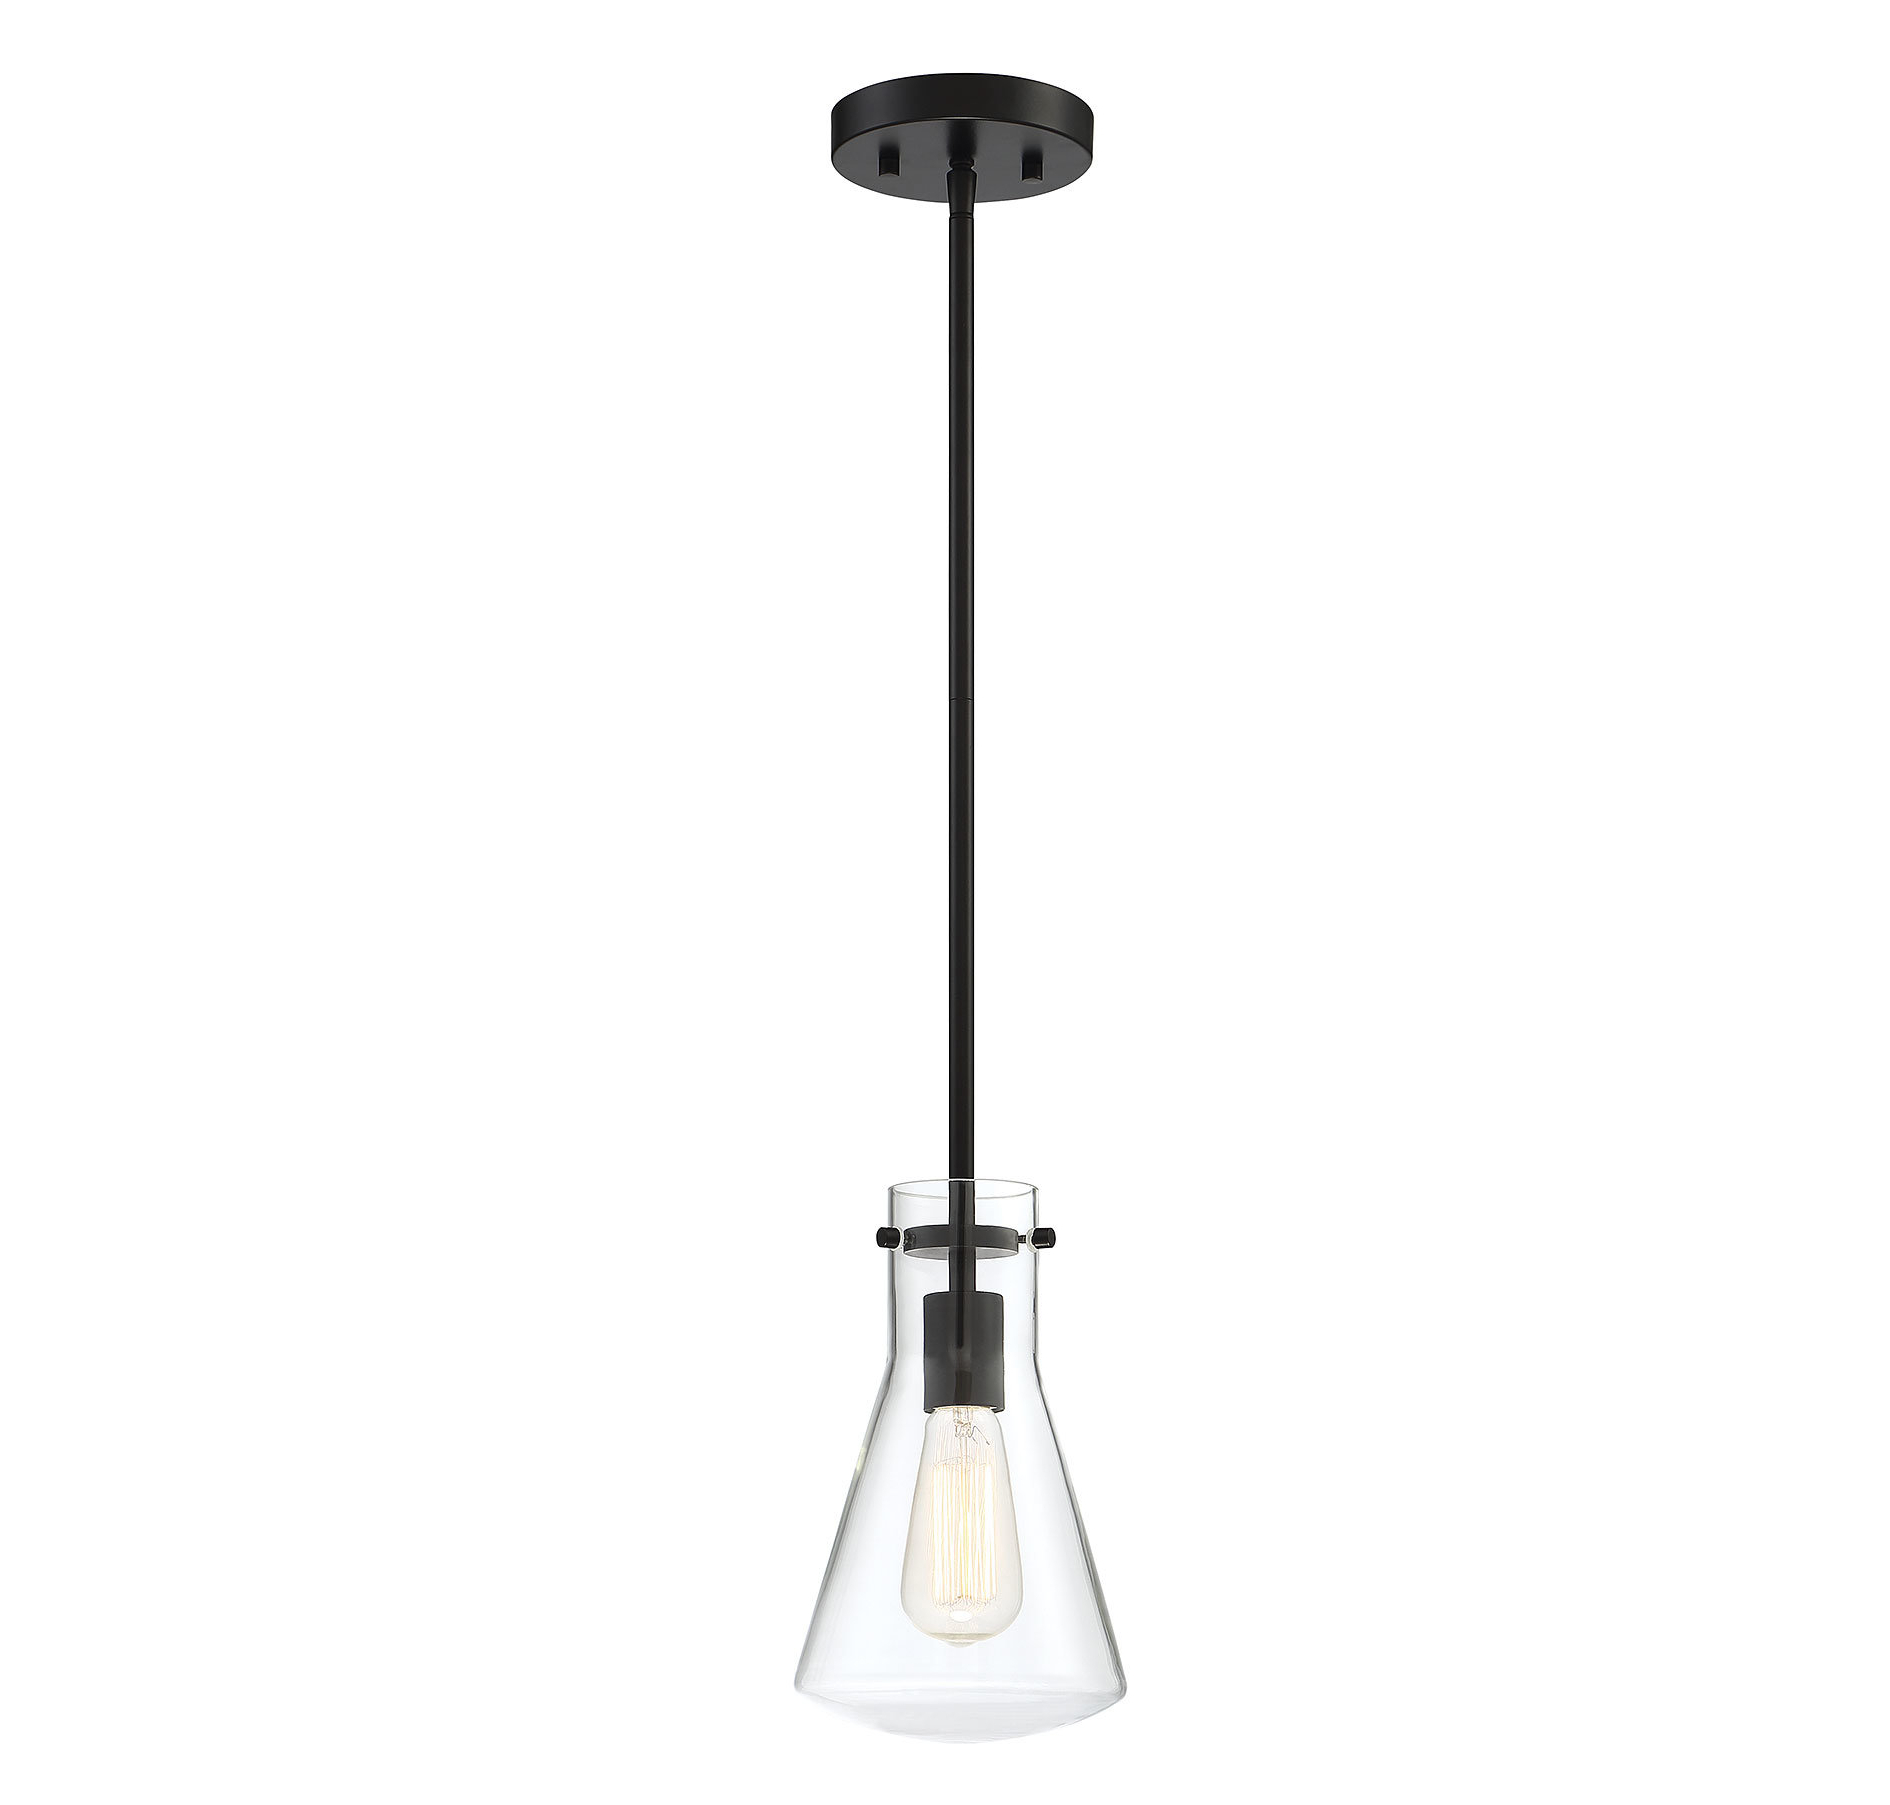 Angelina 1 Light Single Cylinder Pendants Pertaining To Current Enciso 1 Light Single Cone Pendant (View 4 of 25)